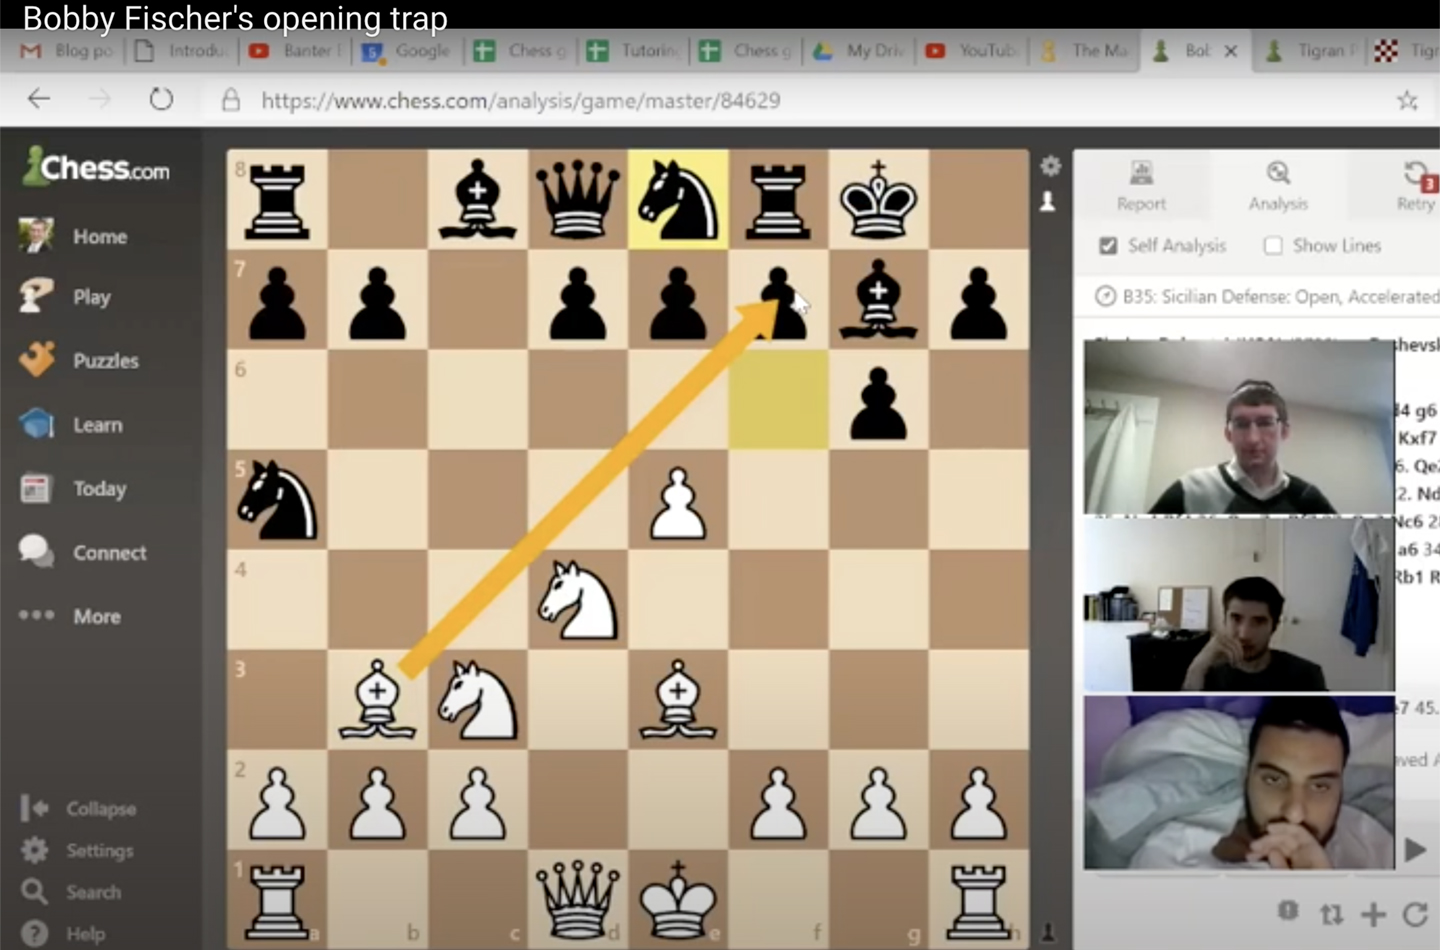 Bobby Fischer's Opening Trap